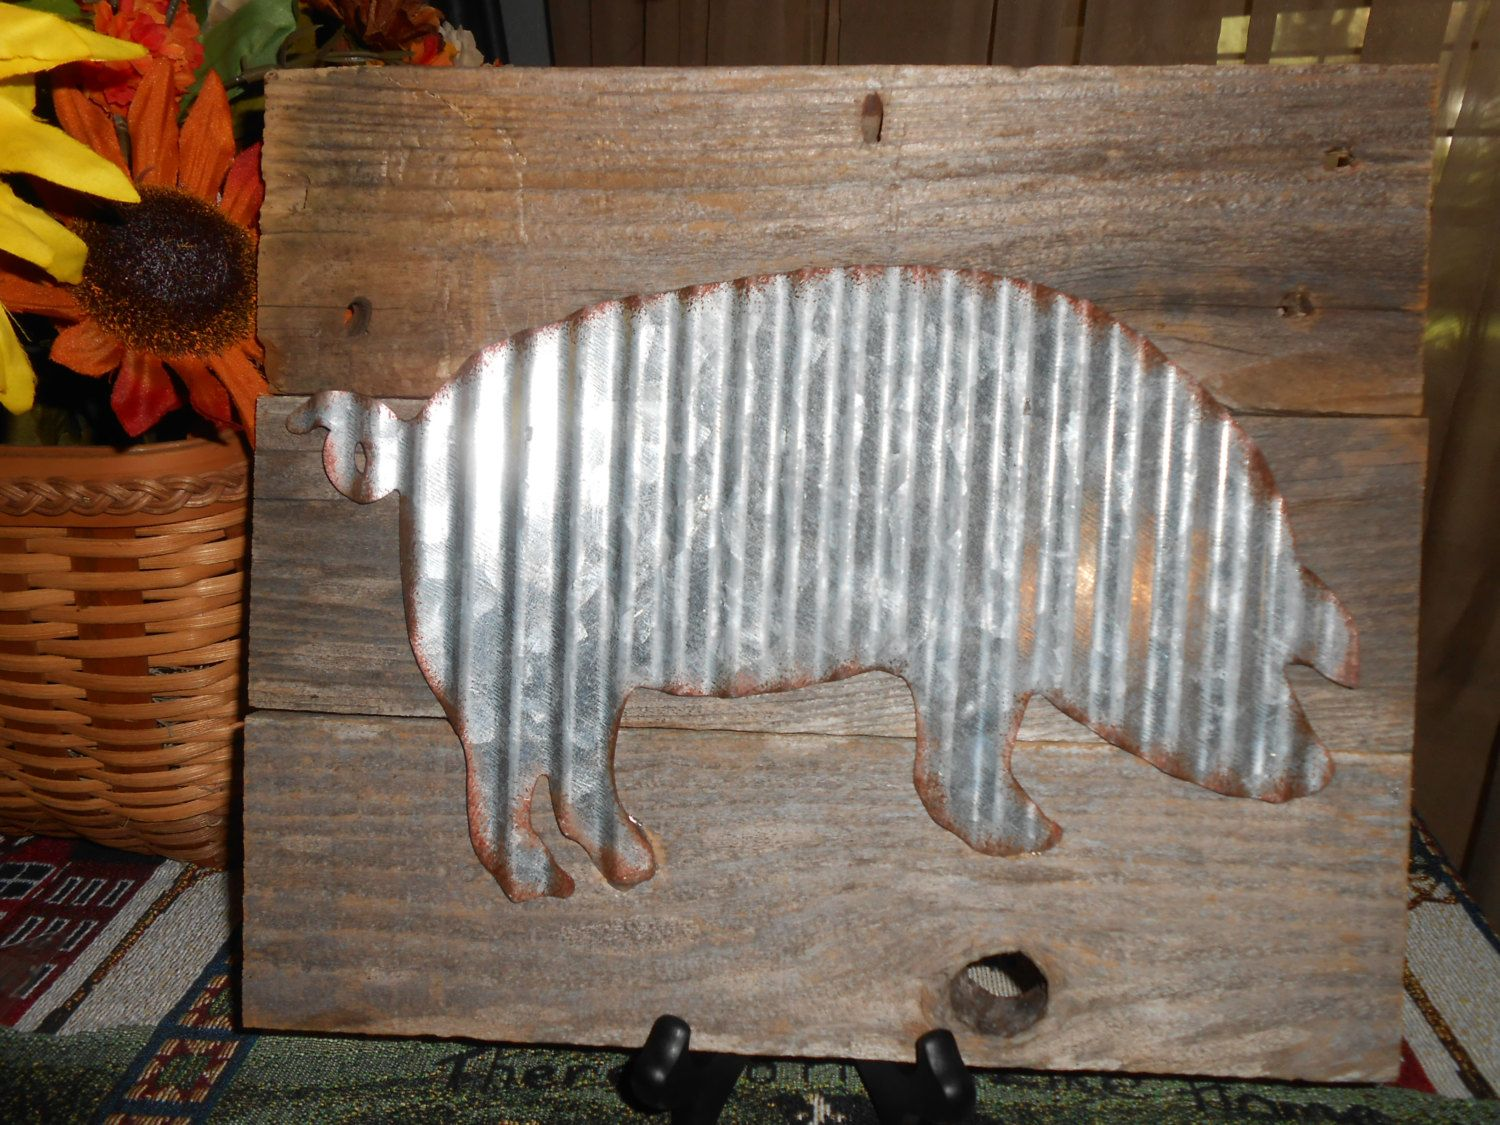 Rustic Reclaimed Wood With Corrugated Metal Pig Wall Art 12 X 10 By Treasuresshop On Etsy Pig Wall Art Farm Decor Rustic Reclaimed Wood